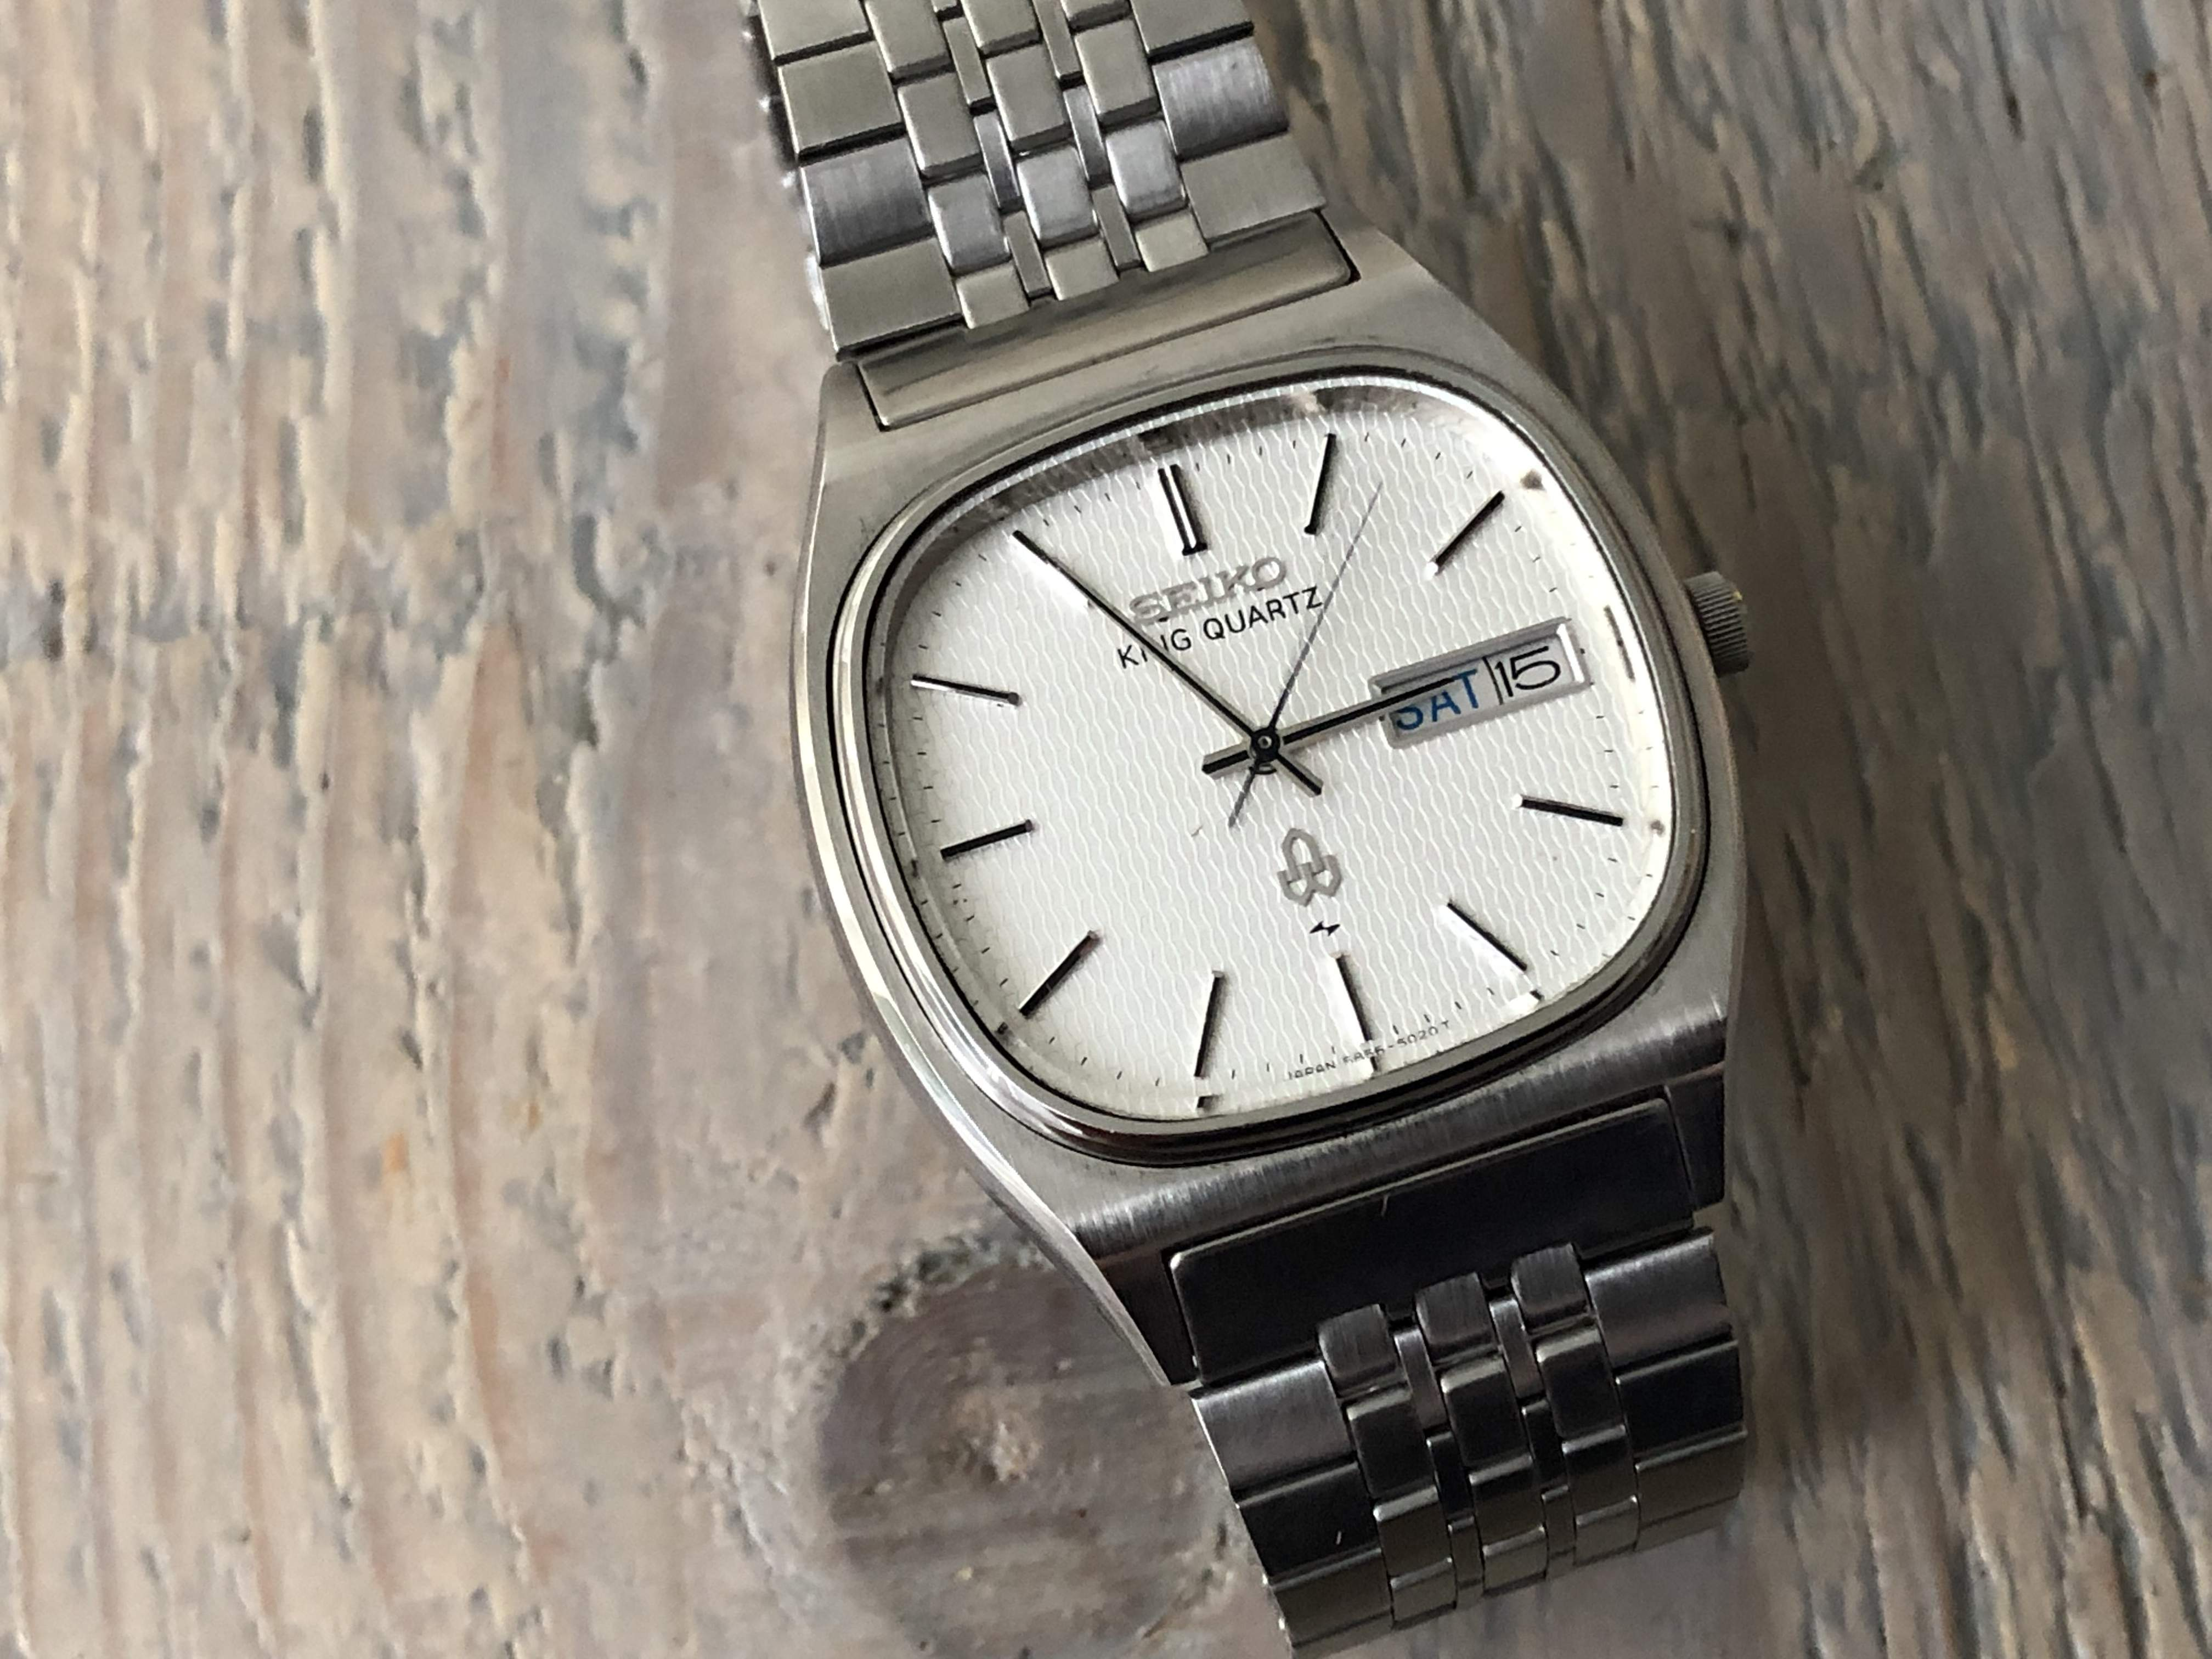 Seiko King Quartz 5856-5020 (Sold)